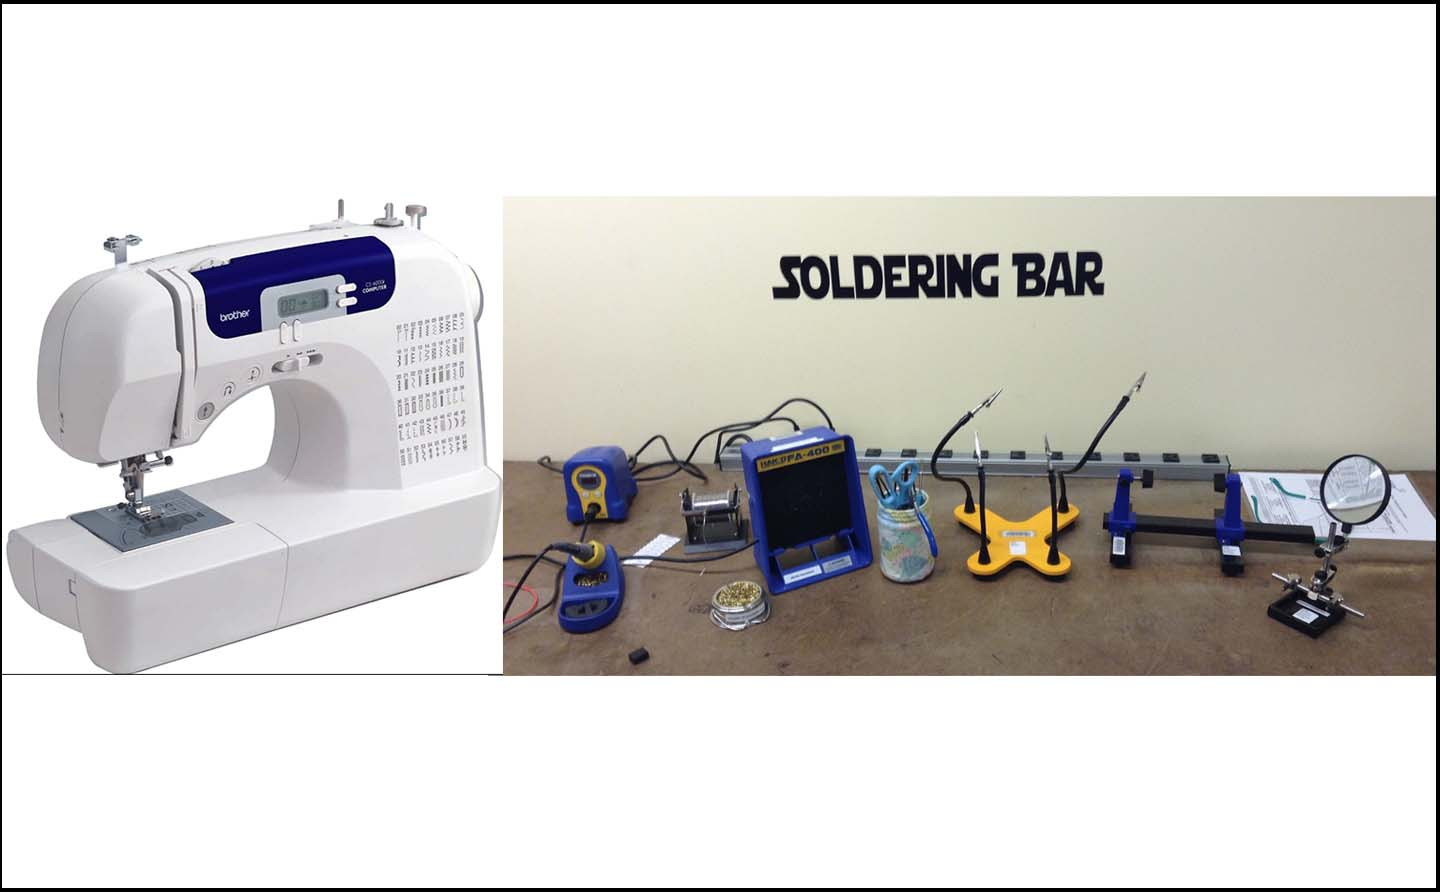 DeLaMare Library's sewing machine and soldering bar.